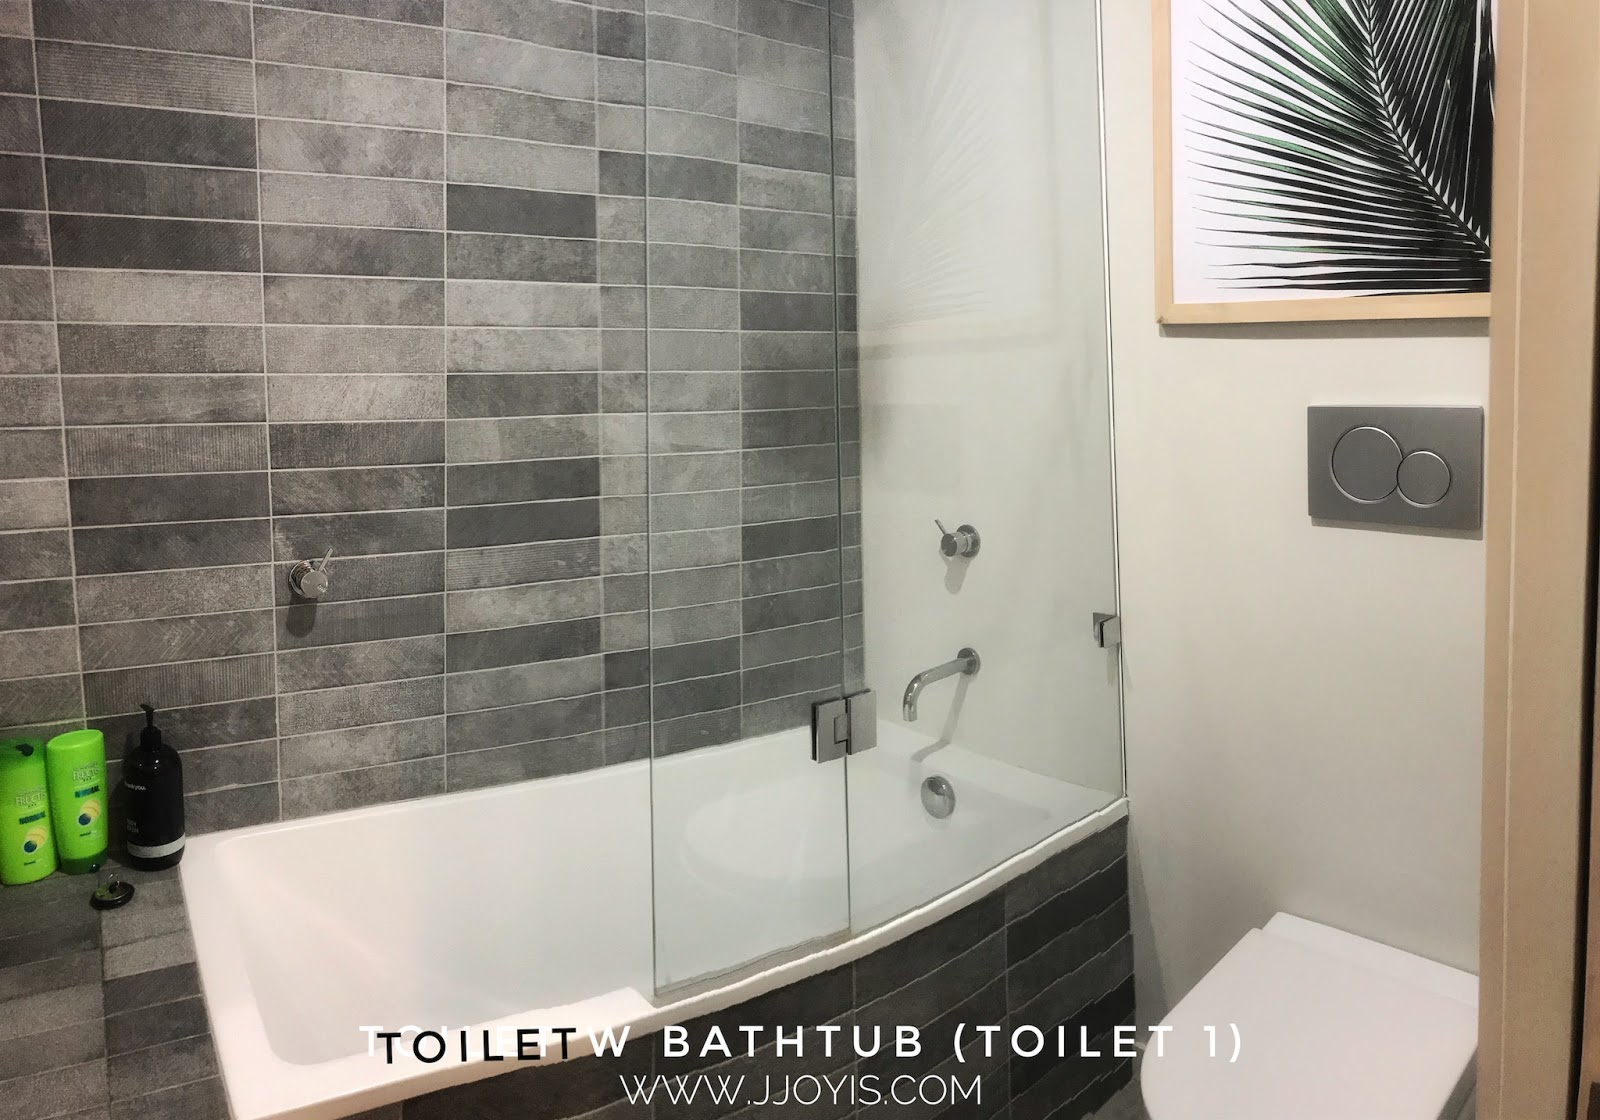 Airbnb for large groups (sleep 7) in Brisbane CBD toilet bathtub